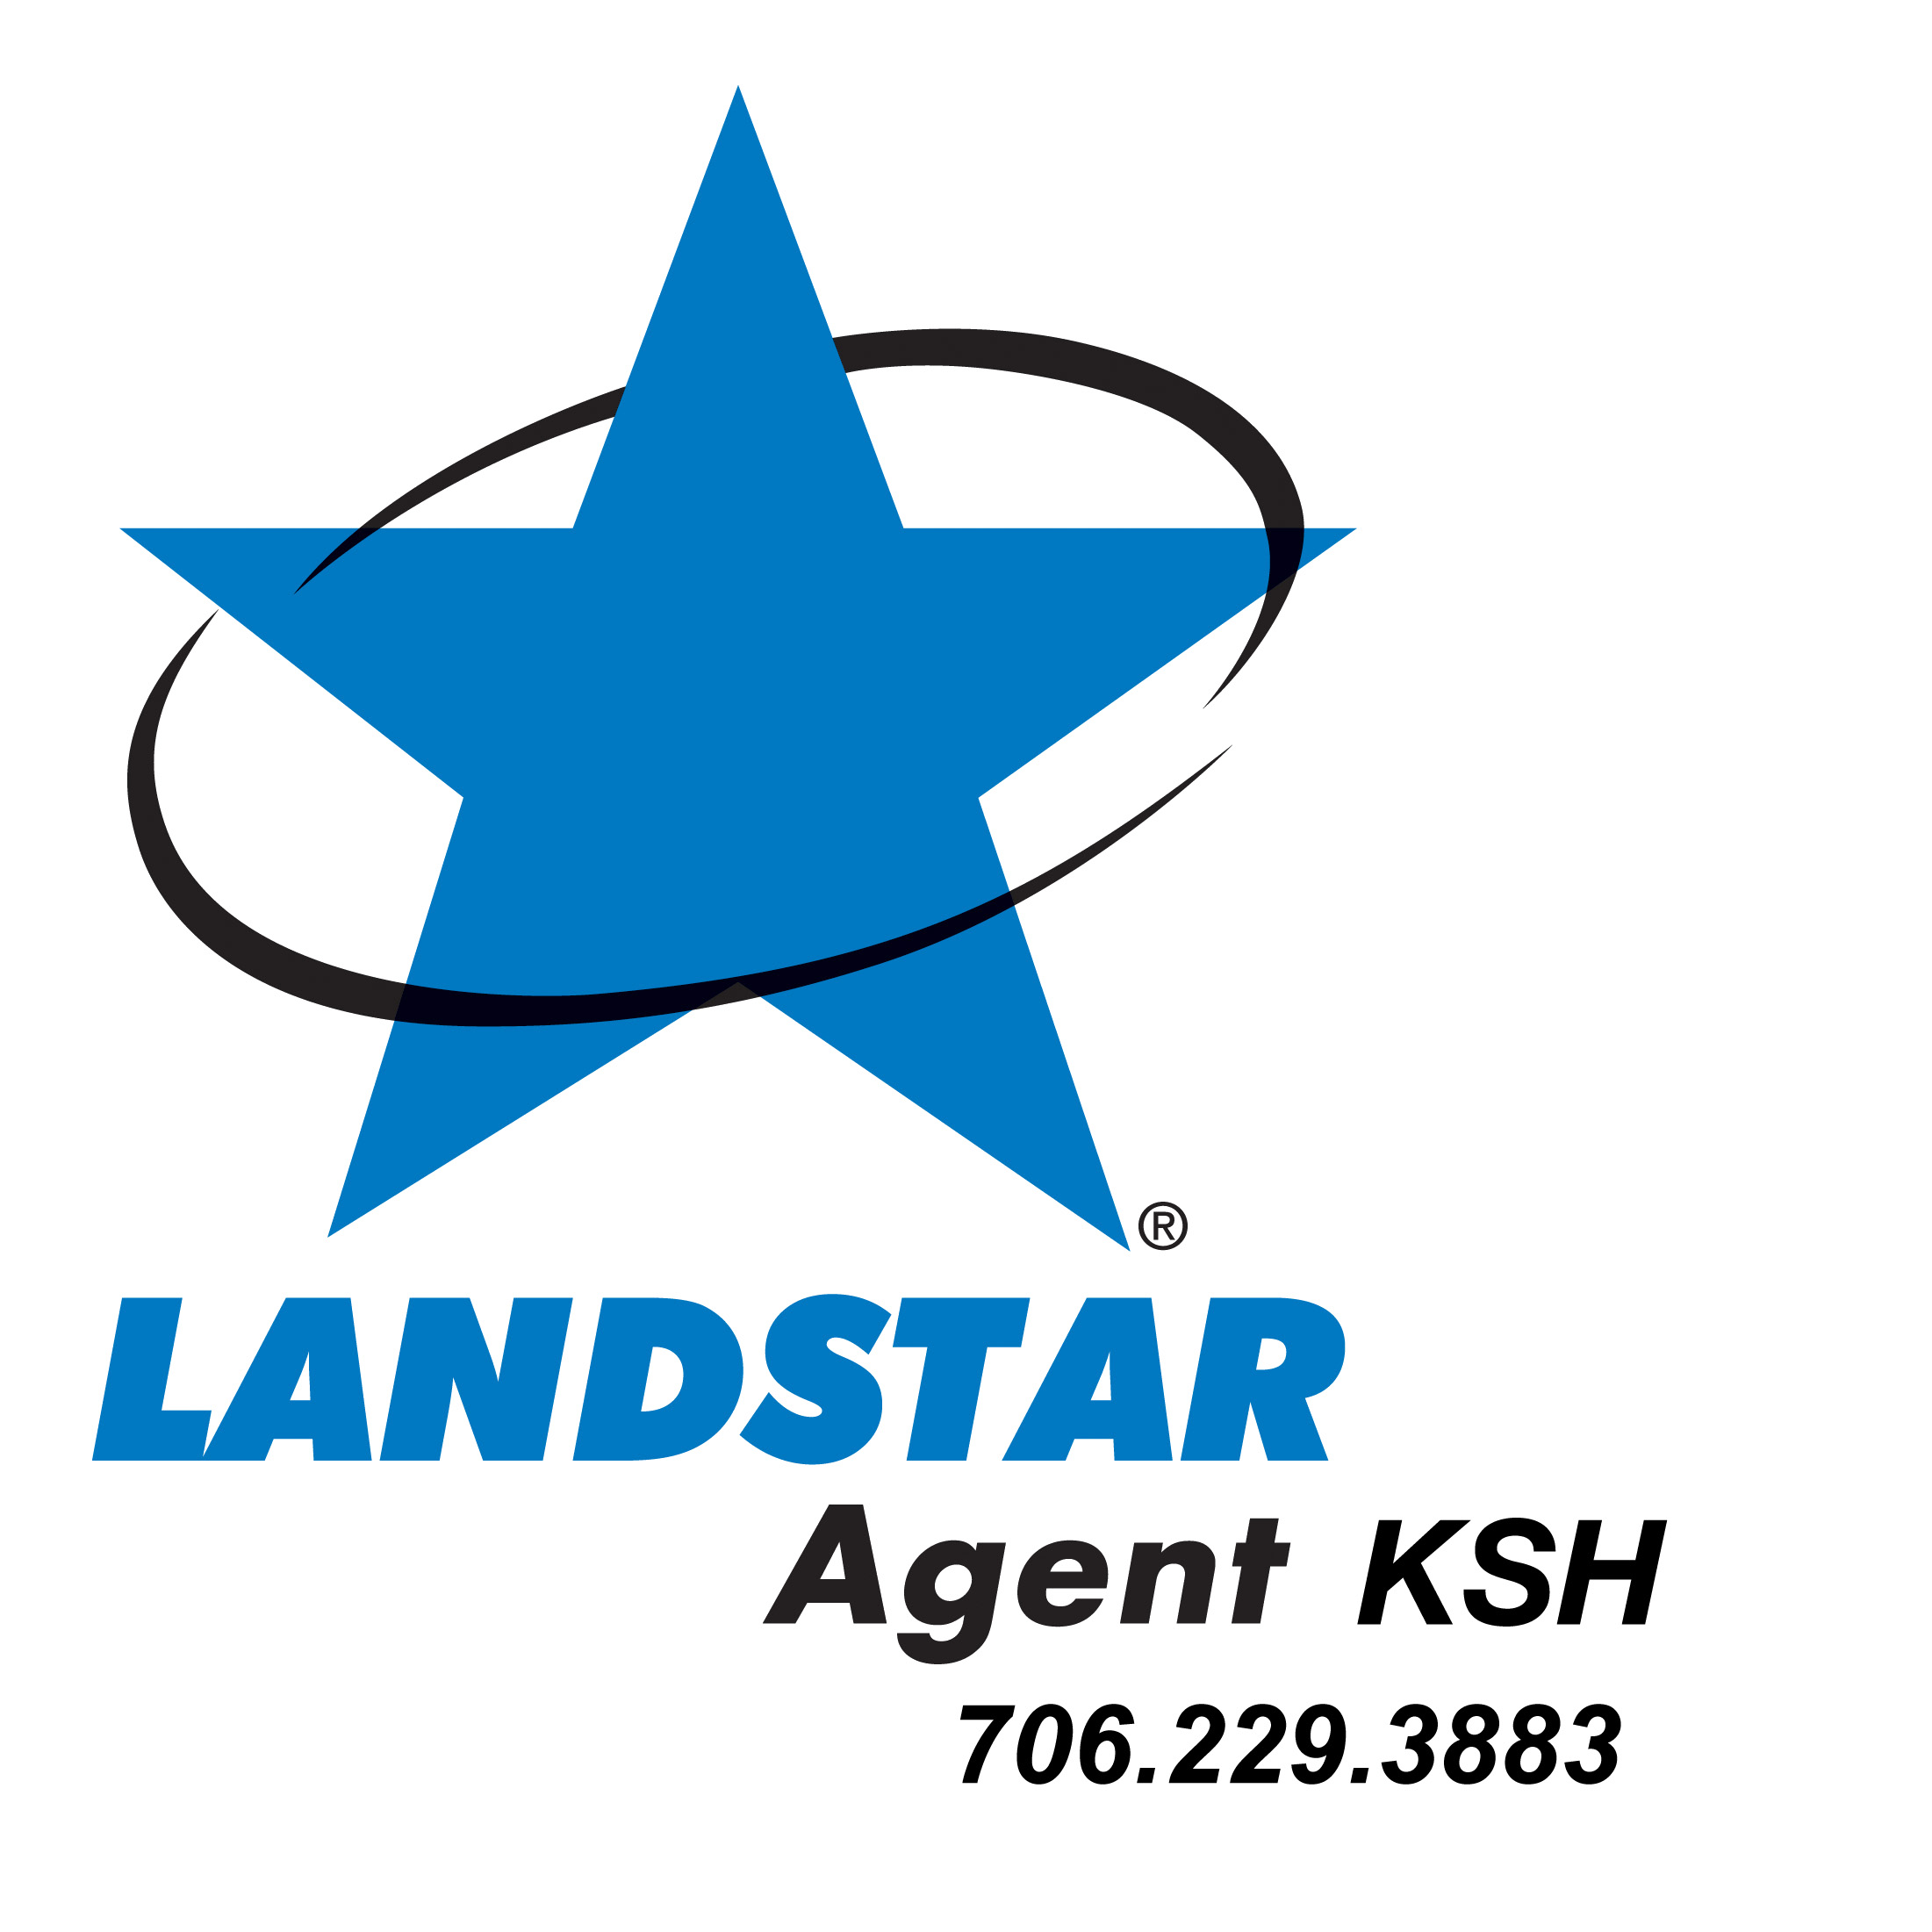 Landstar - The Kevin Wright Agency